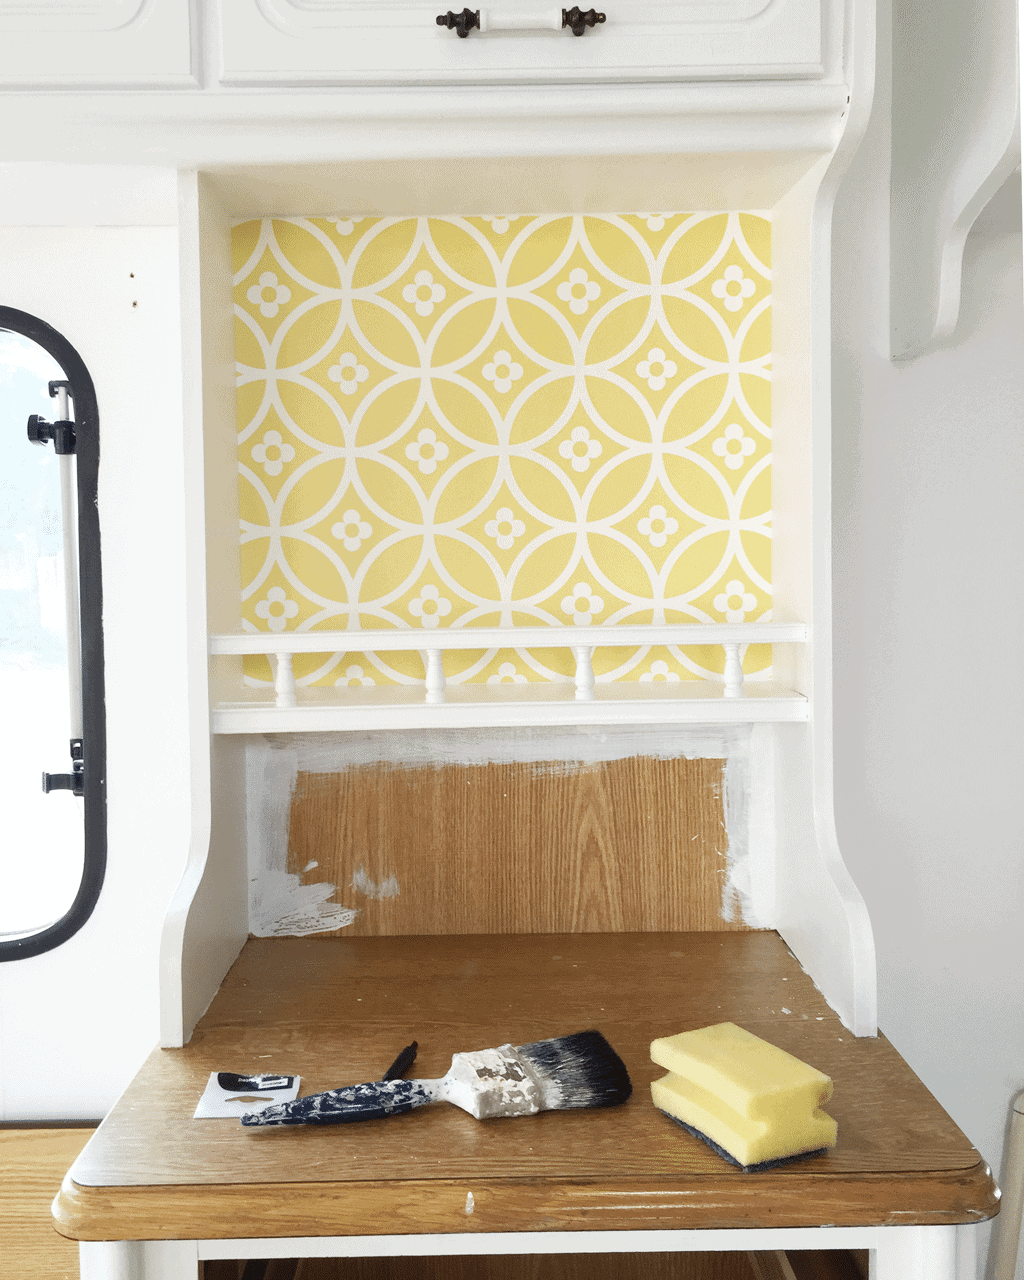 Decorating A Caravan Layla Faye Wallpaper Half On The